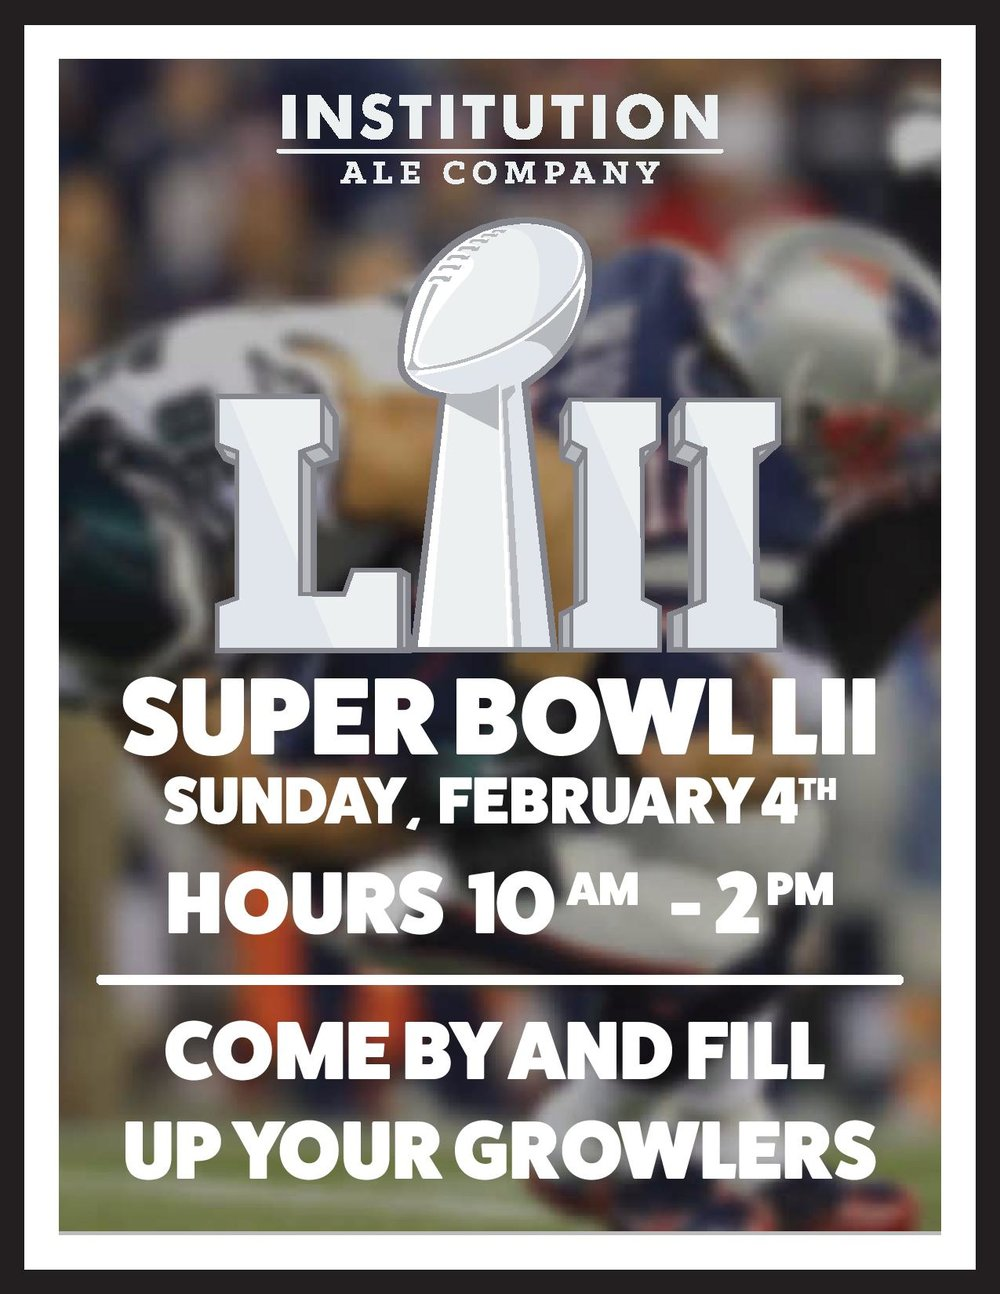 superbowl_flyer-page-001.jpg